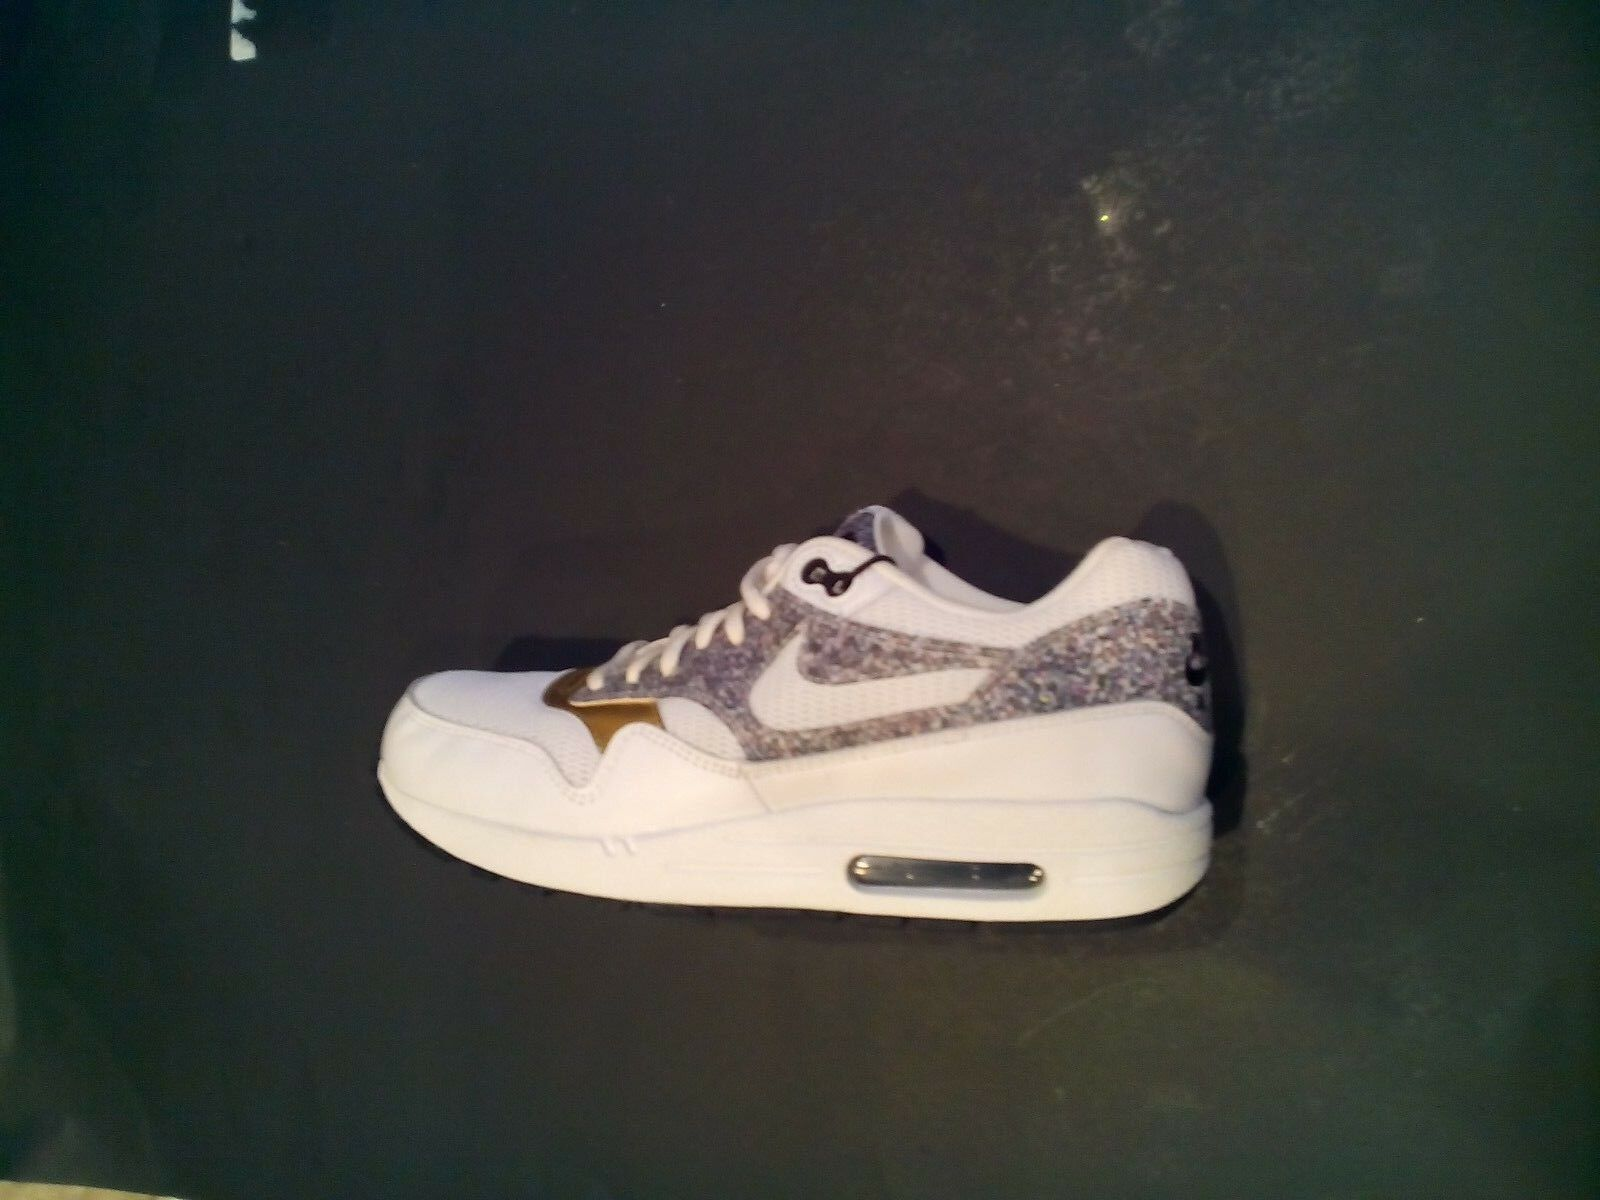 New Nike Women's Air Max 1 SE White & Gold Running Gym Shoes 881101-100 Size 10